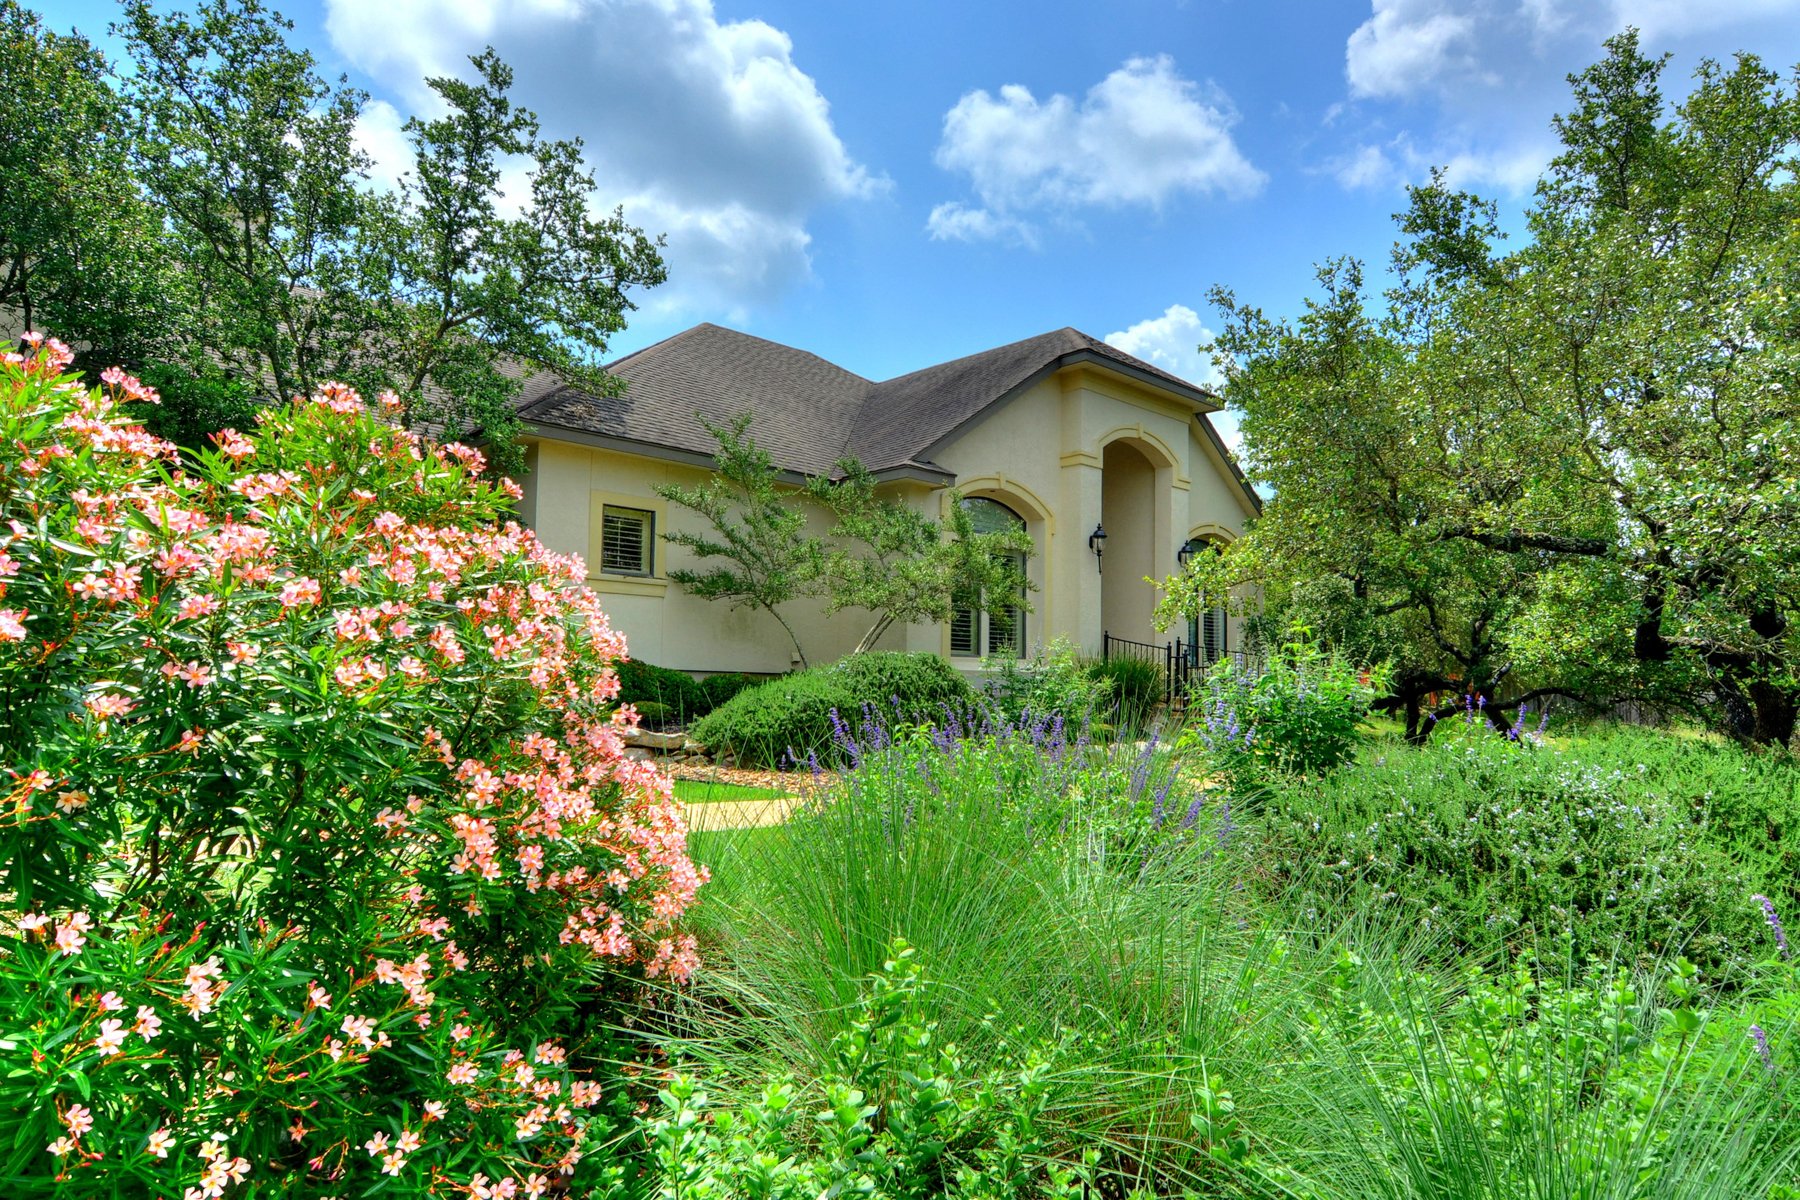 Additional photo for property listing at Transitional Gem in Windermere 8012 Windermere Dr Fair Oaks Ranch, Texas 78015 Estados Unidos